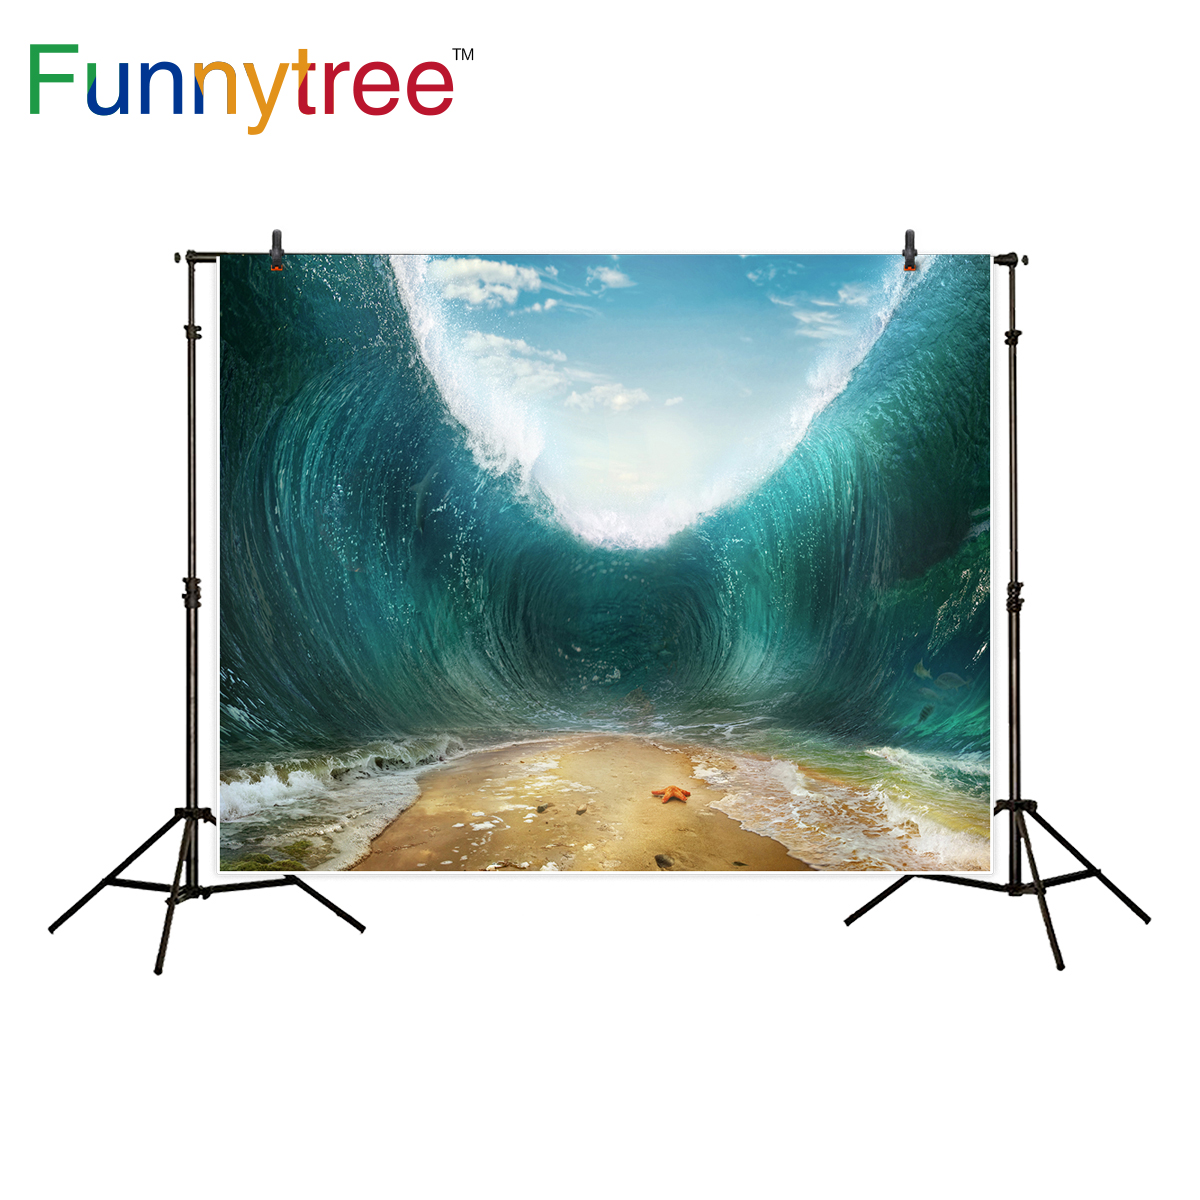 Funnytree professional photography background Sea Waves beach sky ocean photographic accessories backdrop photocall